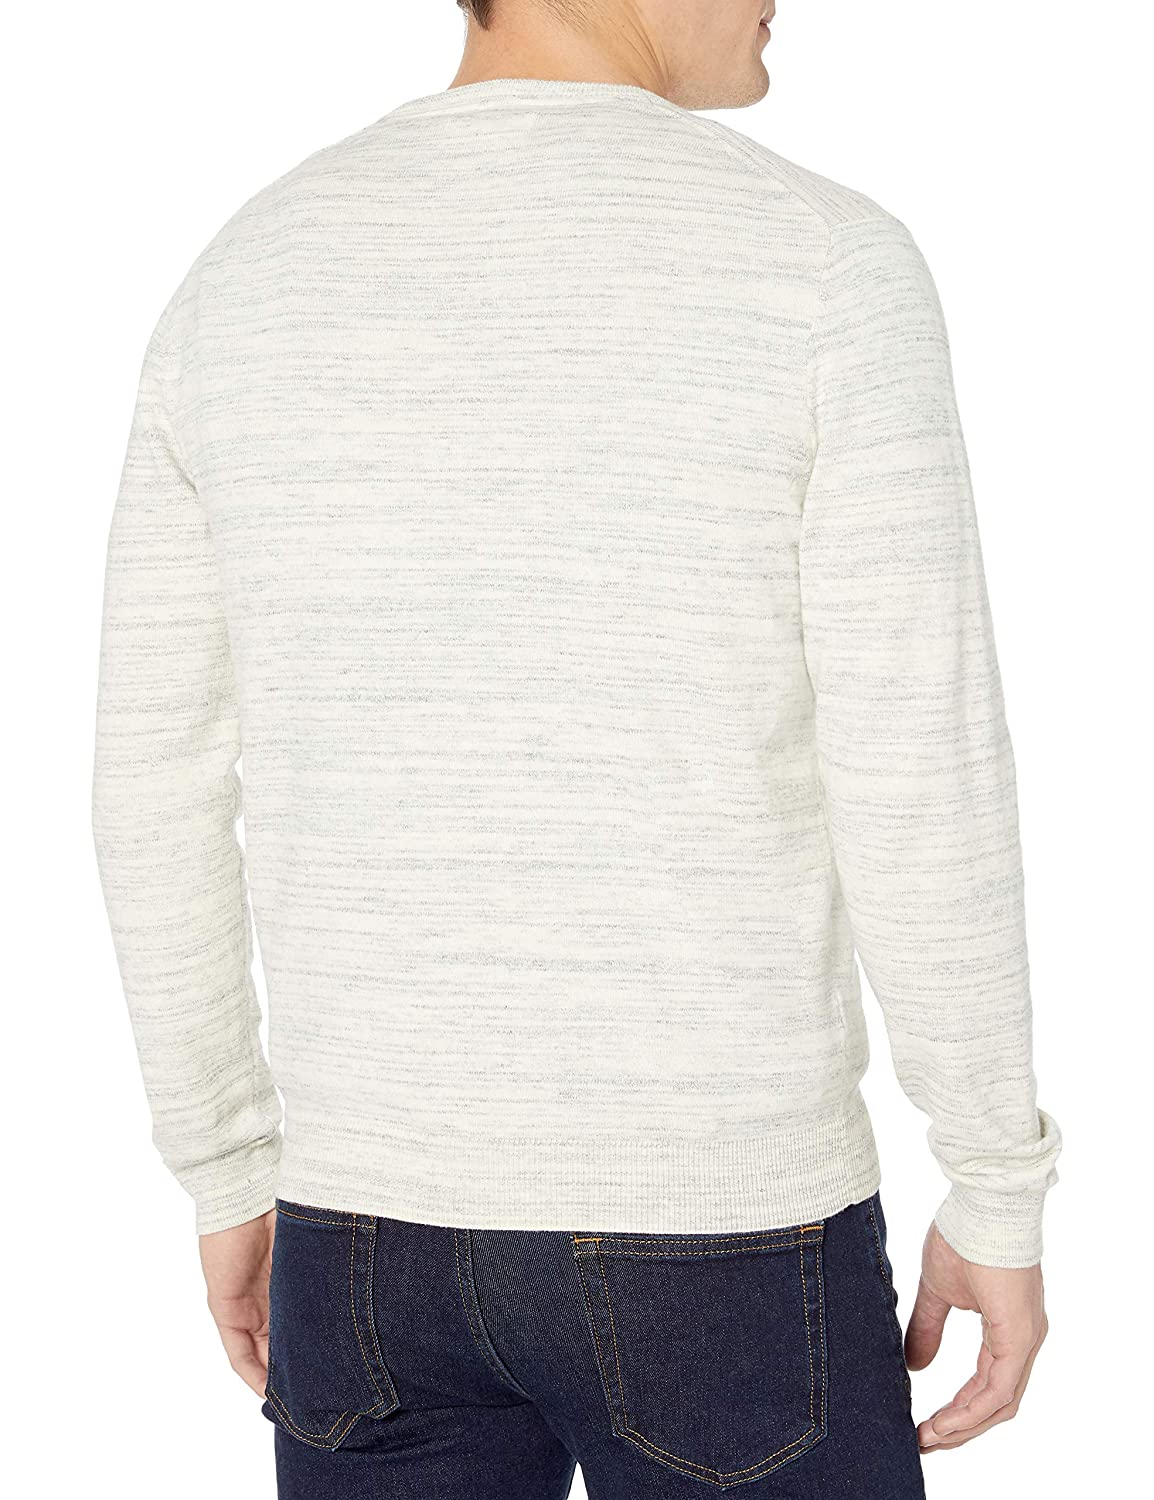 pullover-sweaters Uomo Soft Cotton V-neck Summer Sweater Goodthreads Marchio